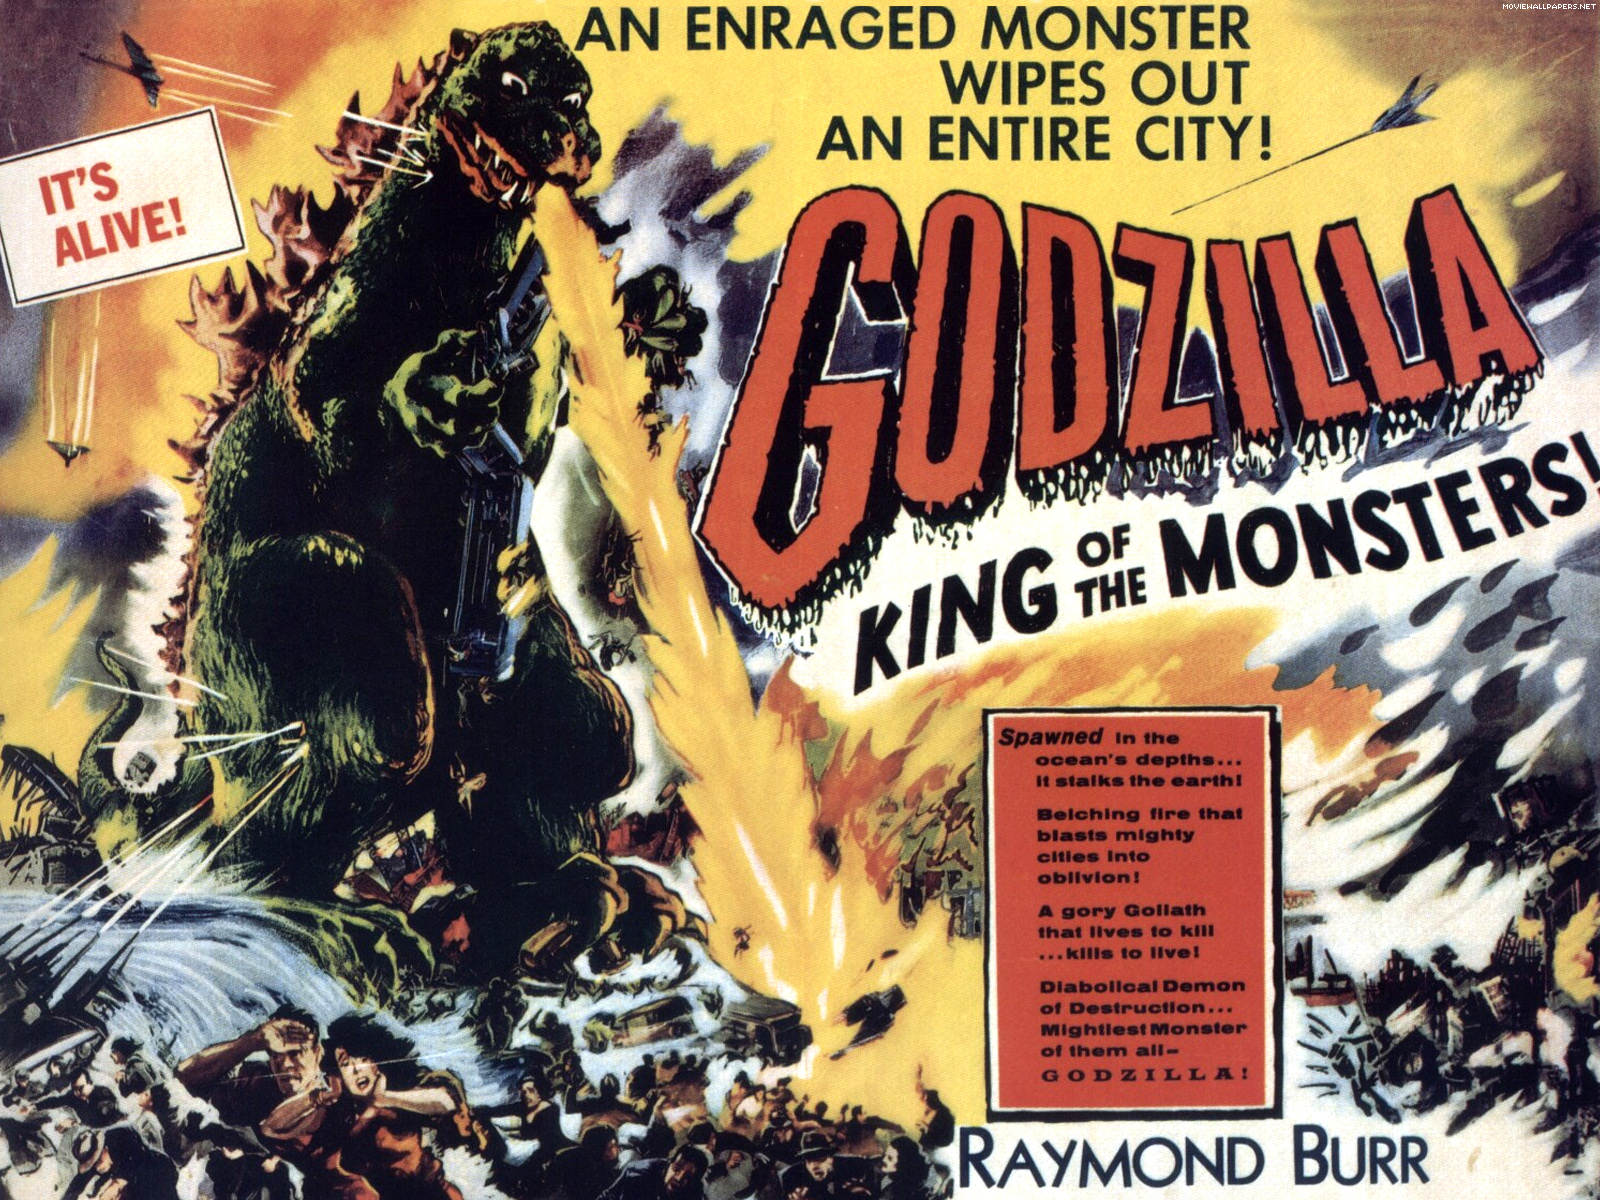 Godzilla+King+Of+The+Monsters 02 Godzilla Shows Up In The Greatest Weather Report Ever